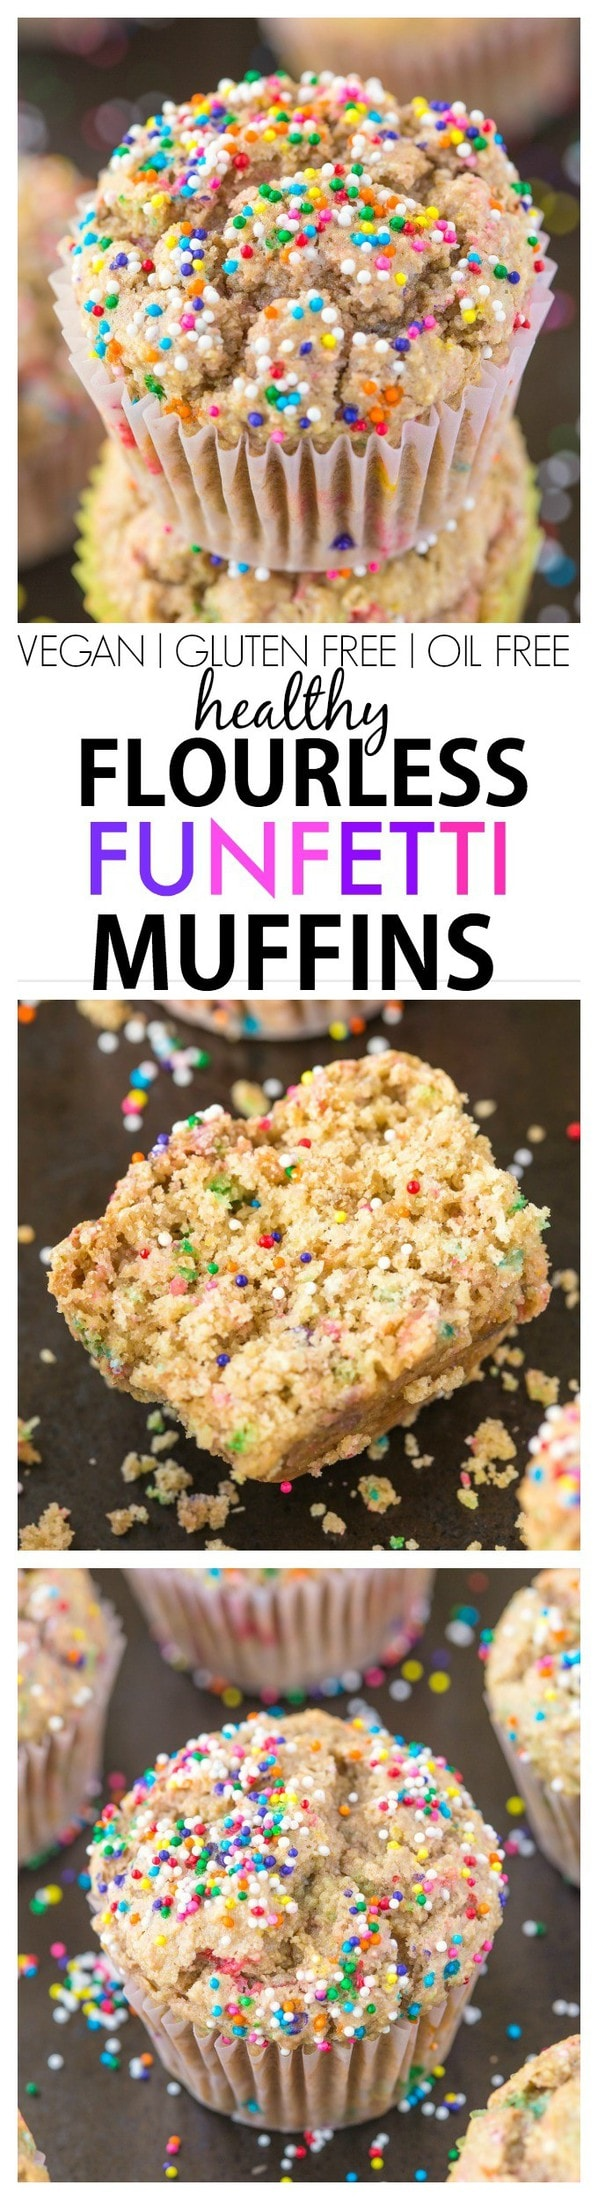 Healthy One Bowl Flourless Funfetti Muffins- Moist, fluffy and sinful tasting but so healthy- There's NO butter or oil and can be made sugar free! {vegan, gluten free, sugar free)